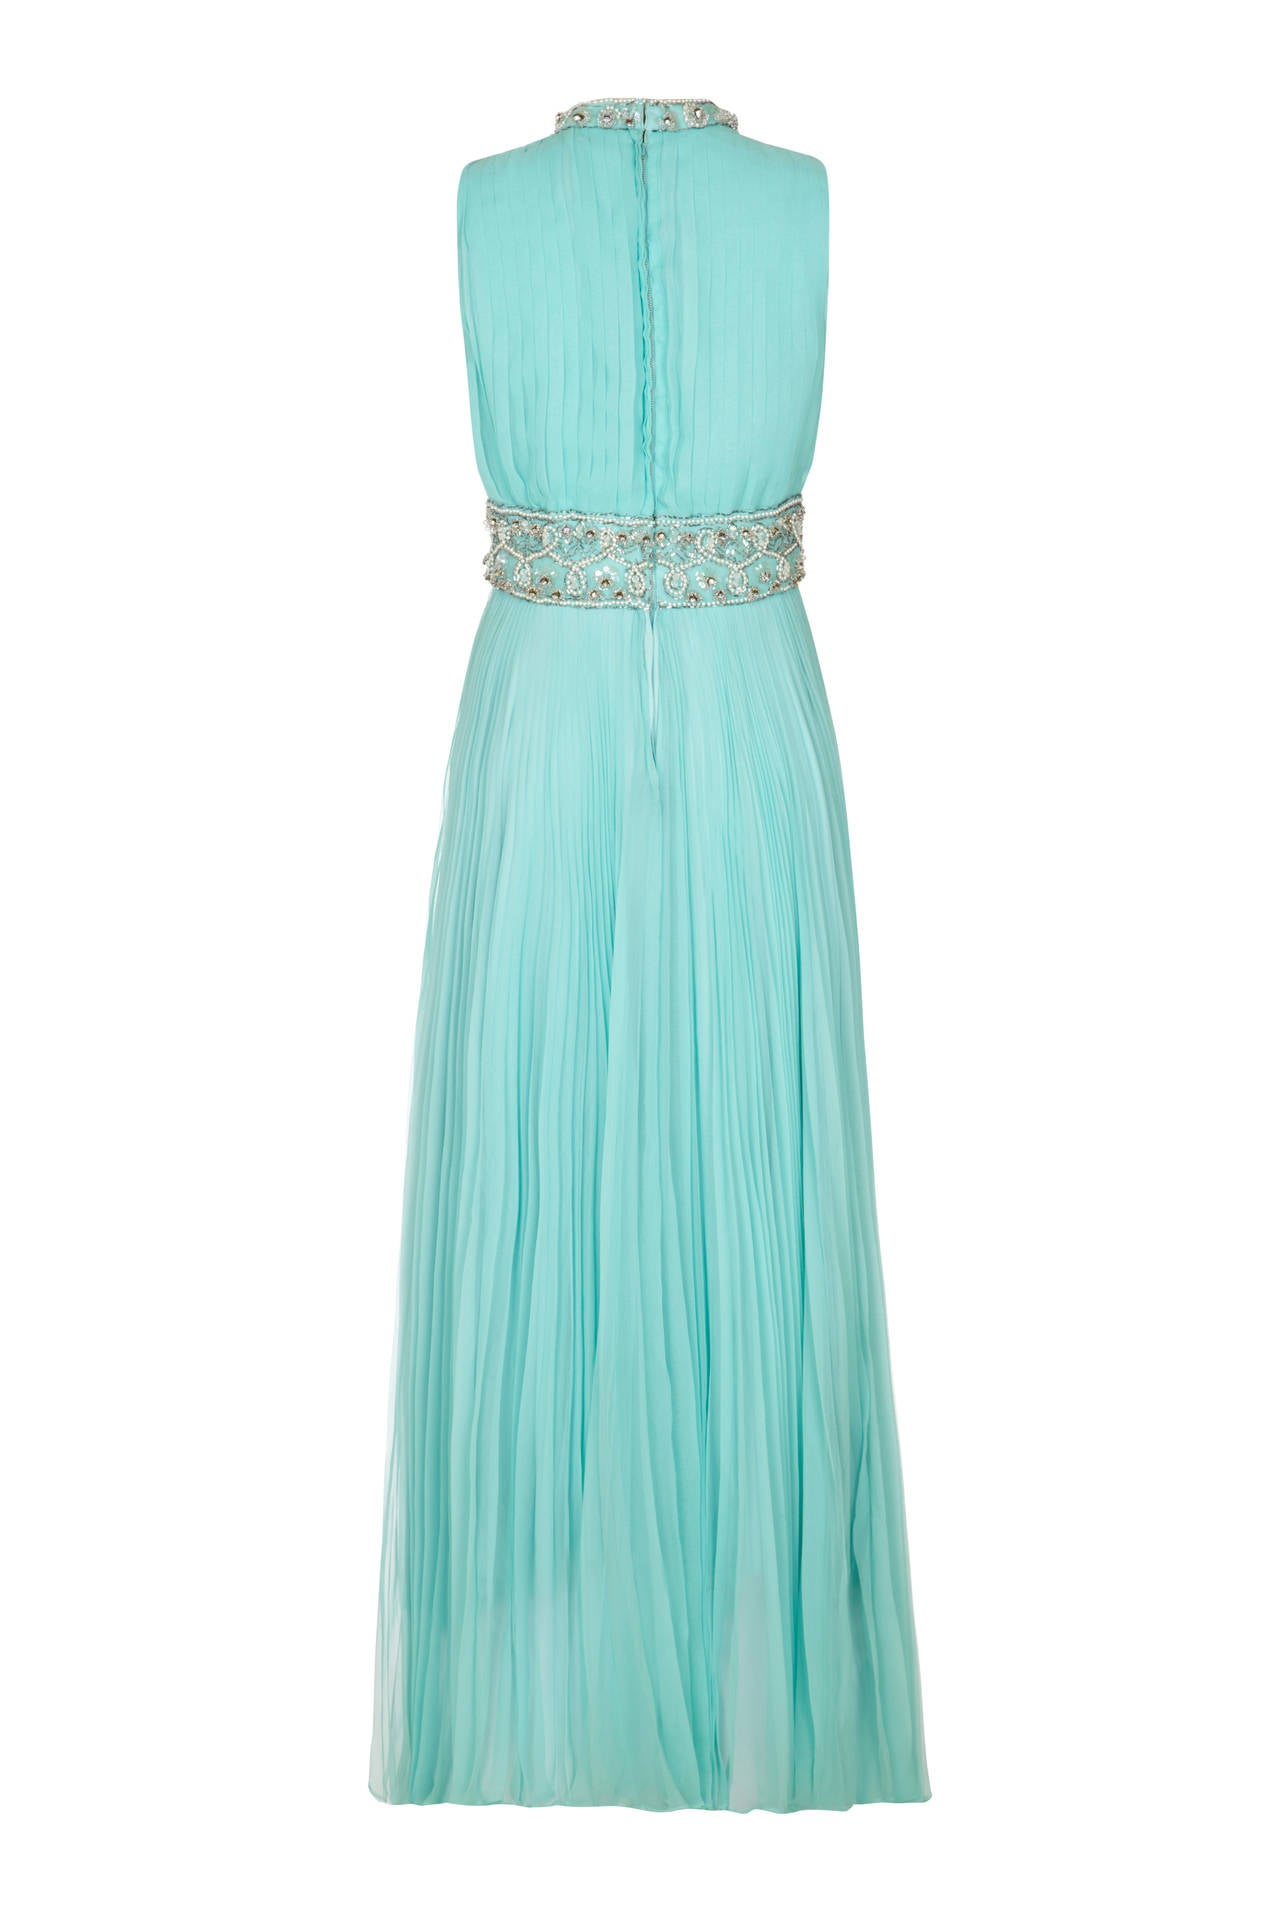 1960s Cerdley Turquoise Pleated Chiffon Beaded Gown 2